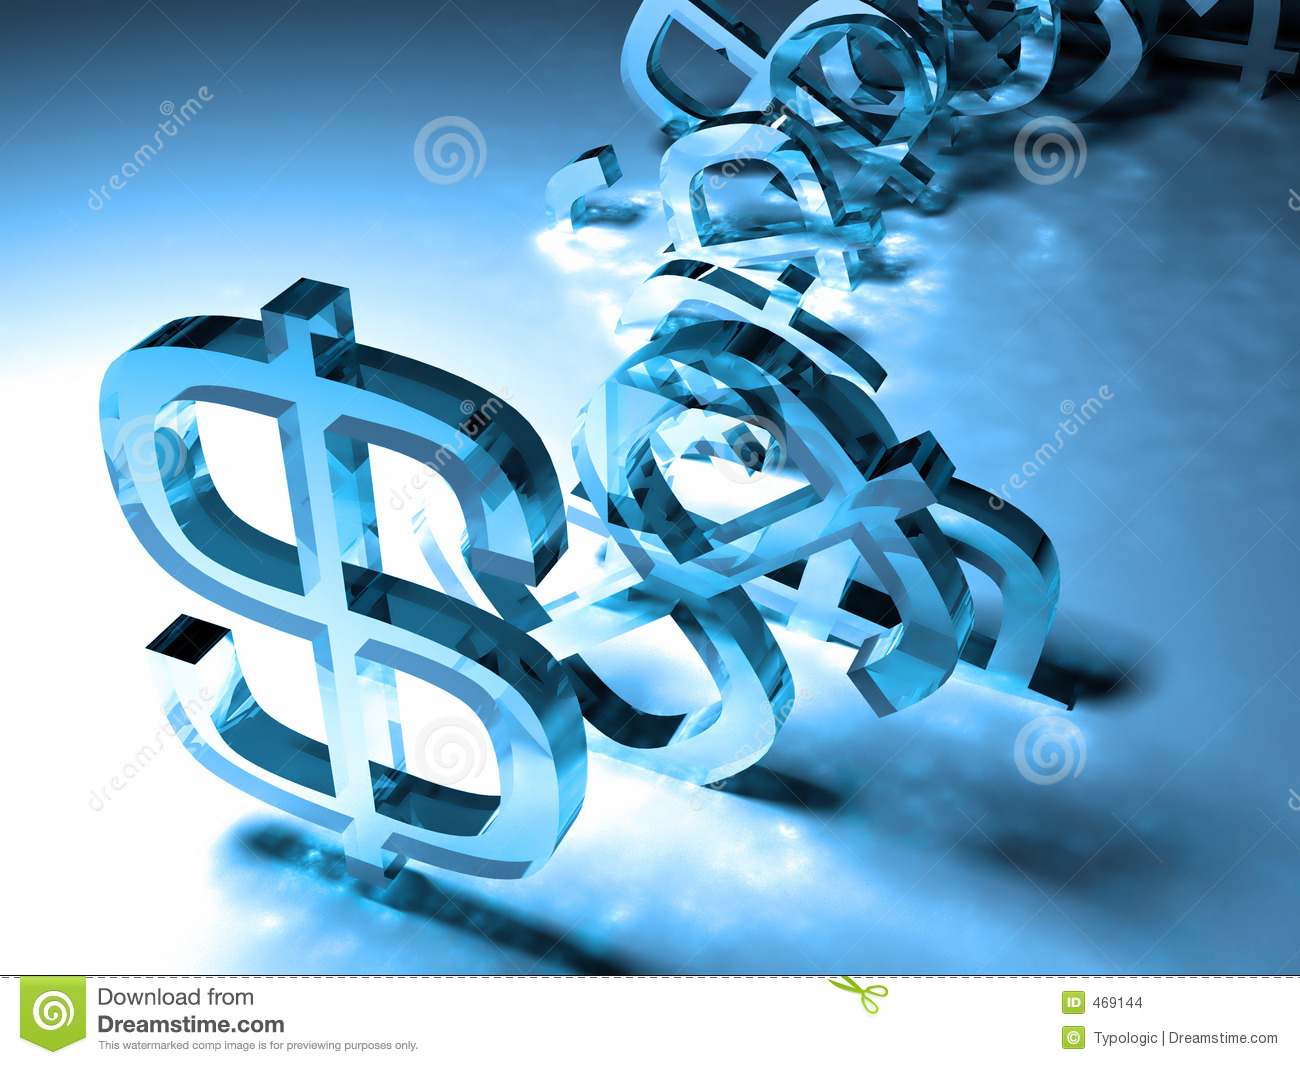 Download Tumbling dollar signs stock photo. Image of money, concept - 469144